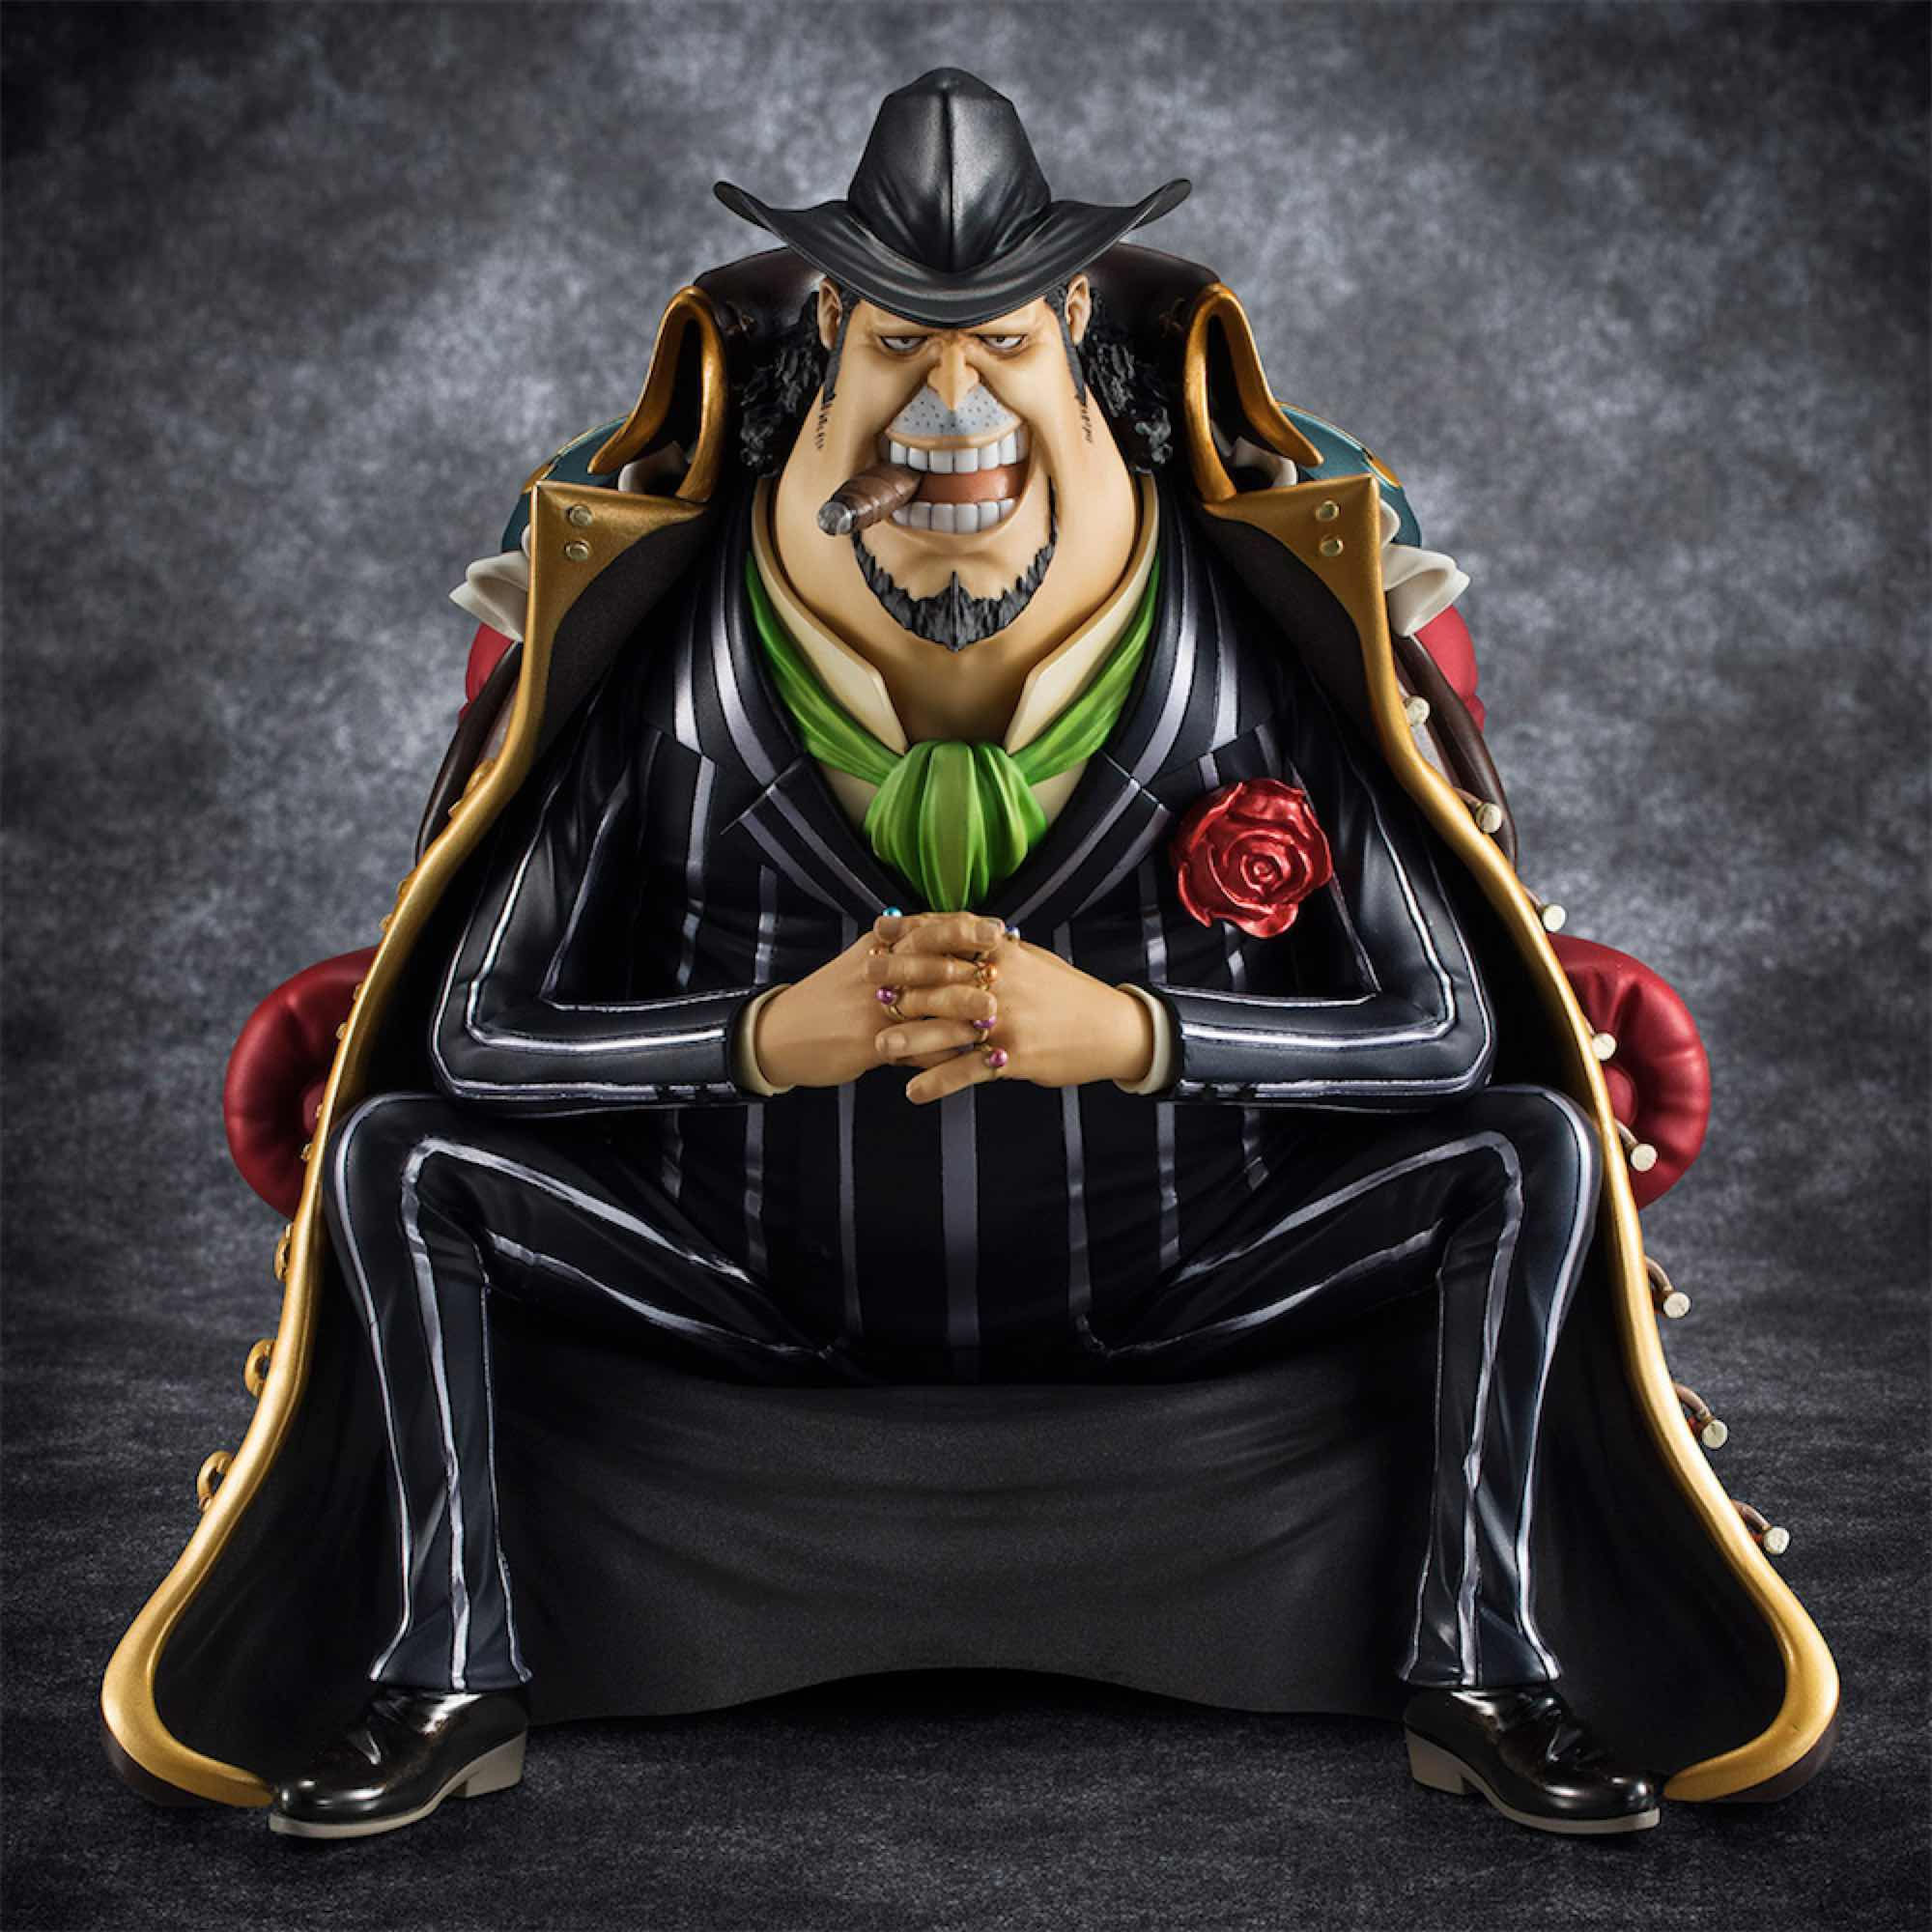 CAPONE GANG BEDGE FIGURA ONE PIECE PORTRAIT OF PIRATES S.O.C.